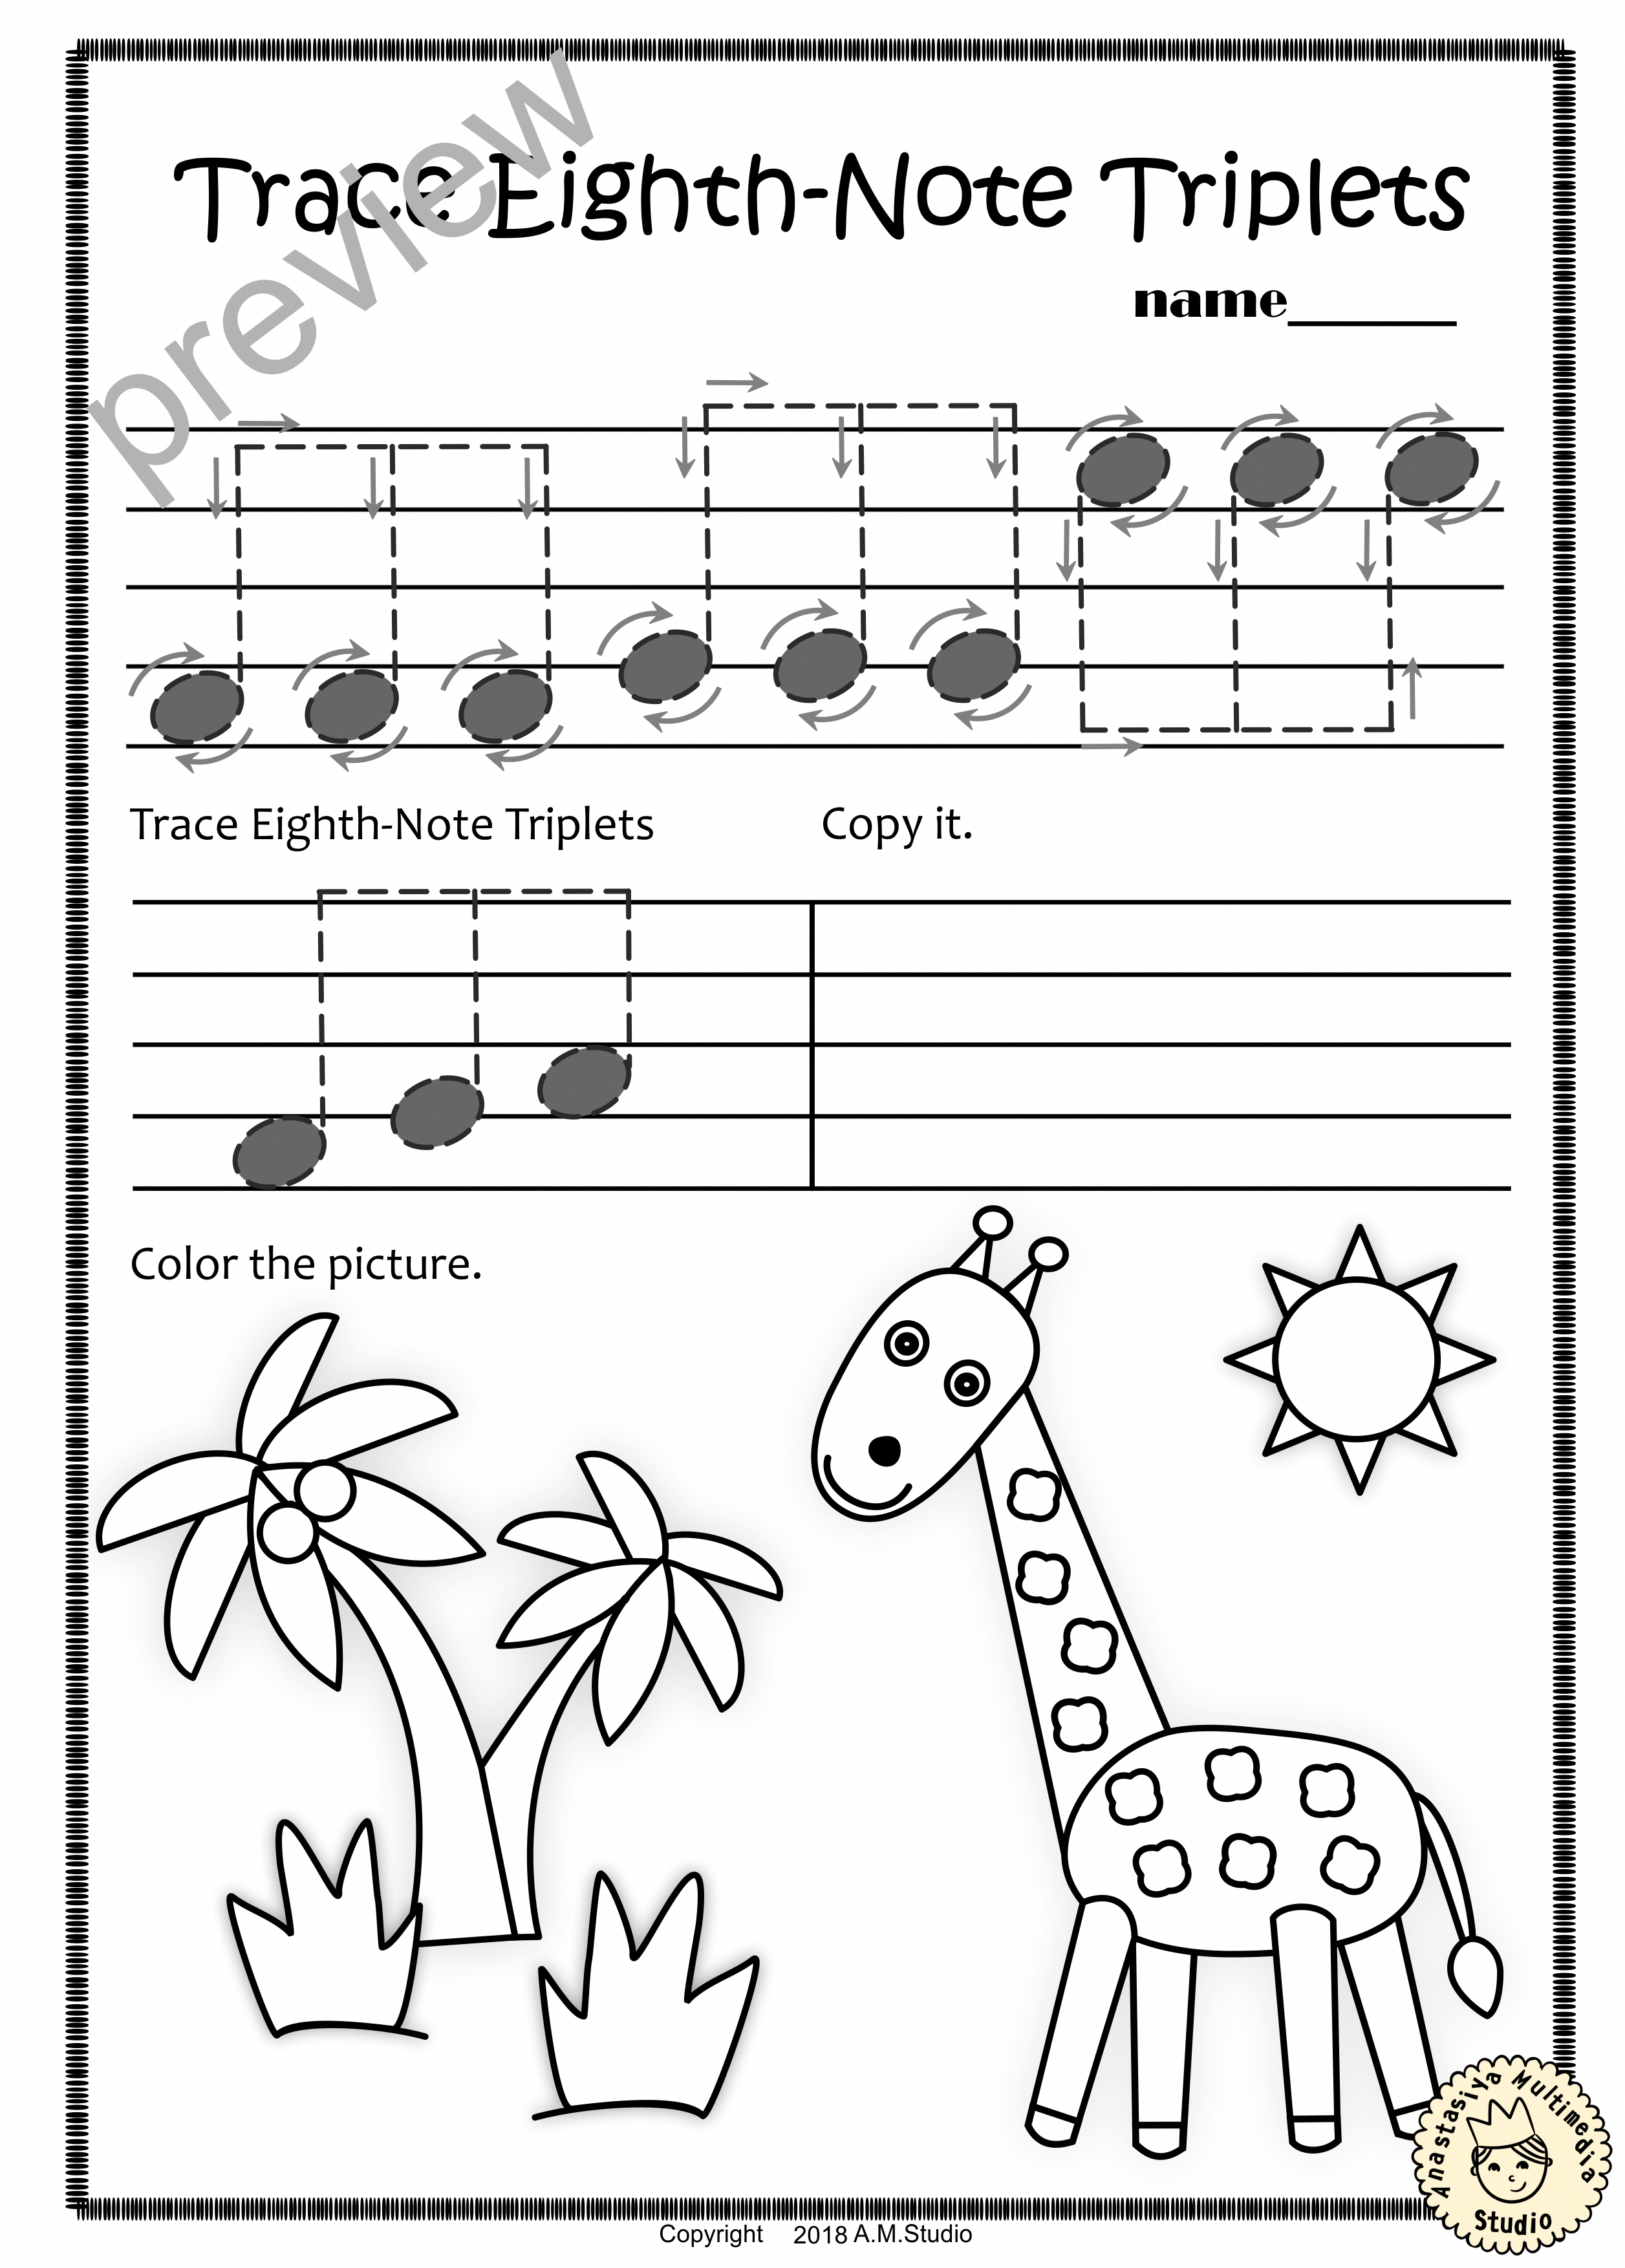 A Set Of 20 Summer Themed Music Worksheets Is Created To